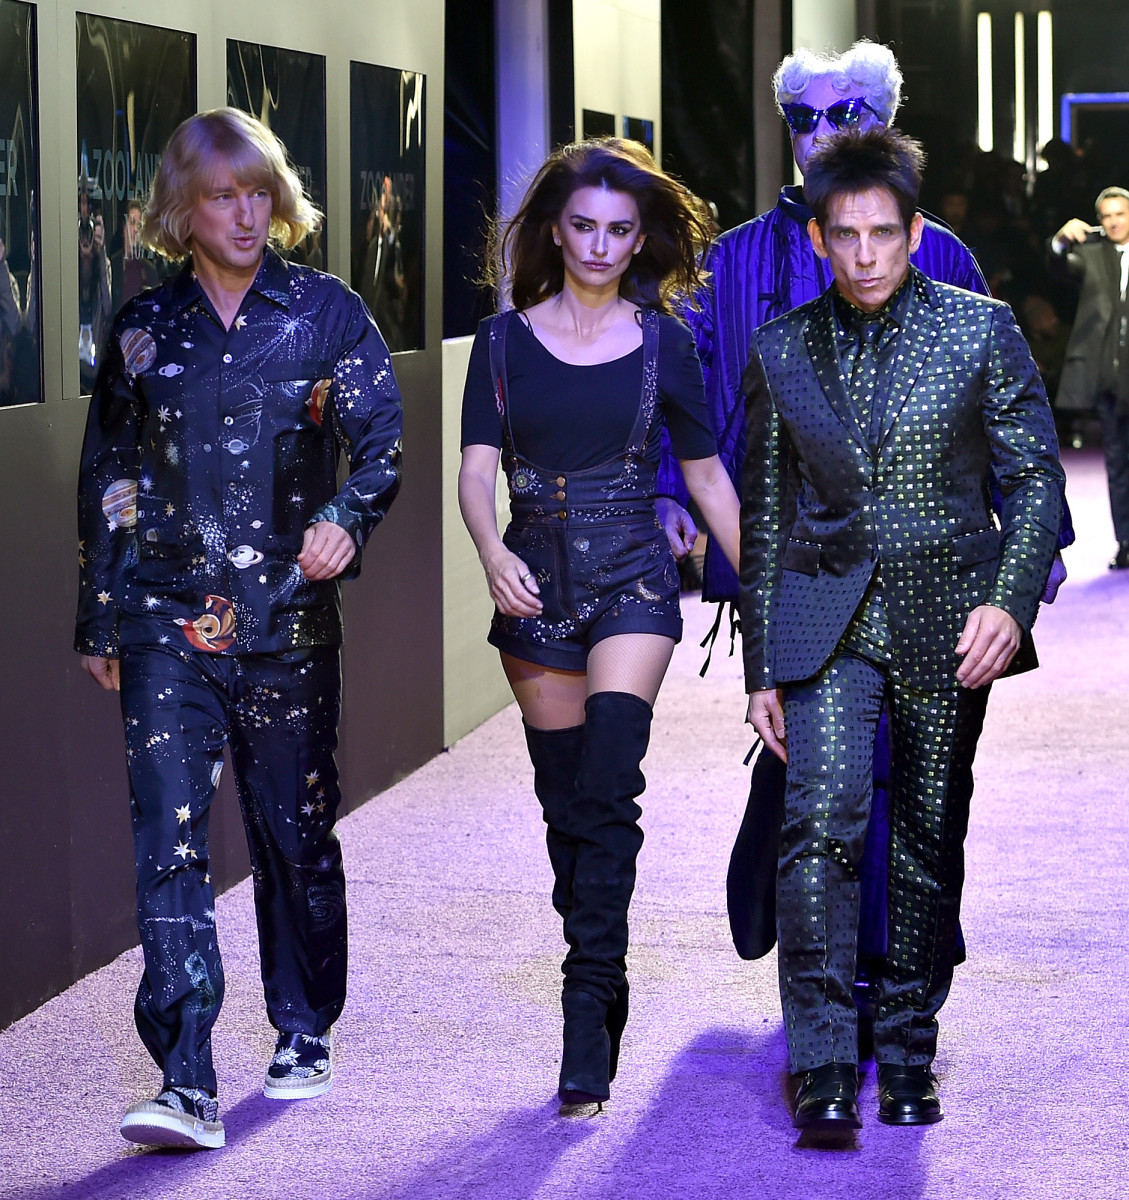 The Zoolander 2 Premiere Doubled As A Fashion Show At Lincoln Center Fashionista